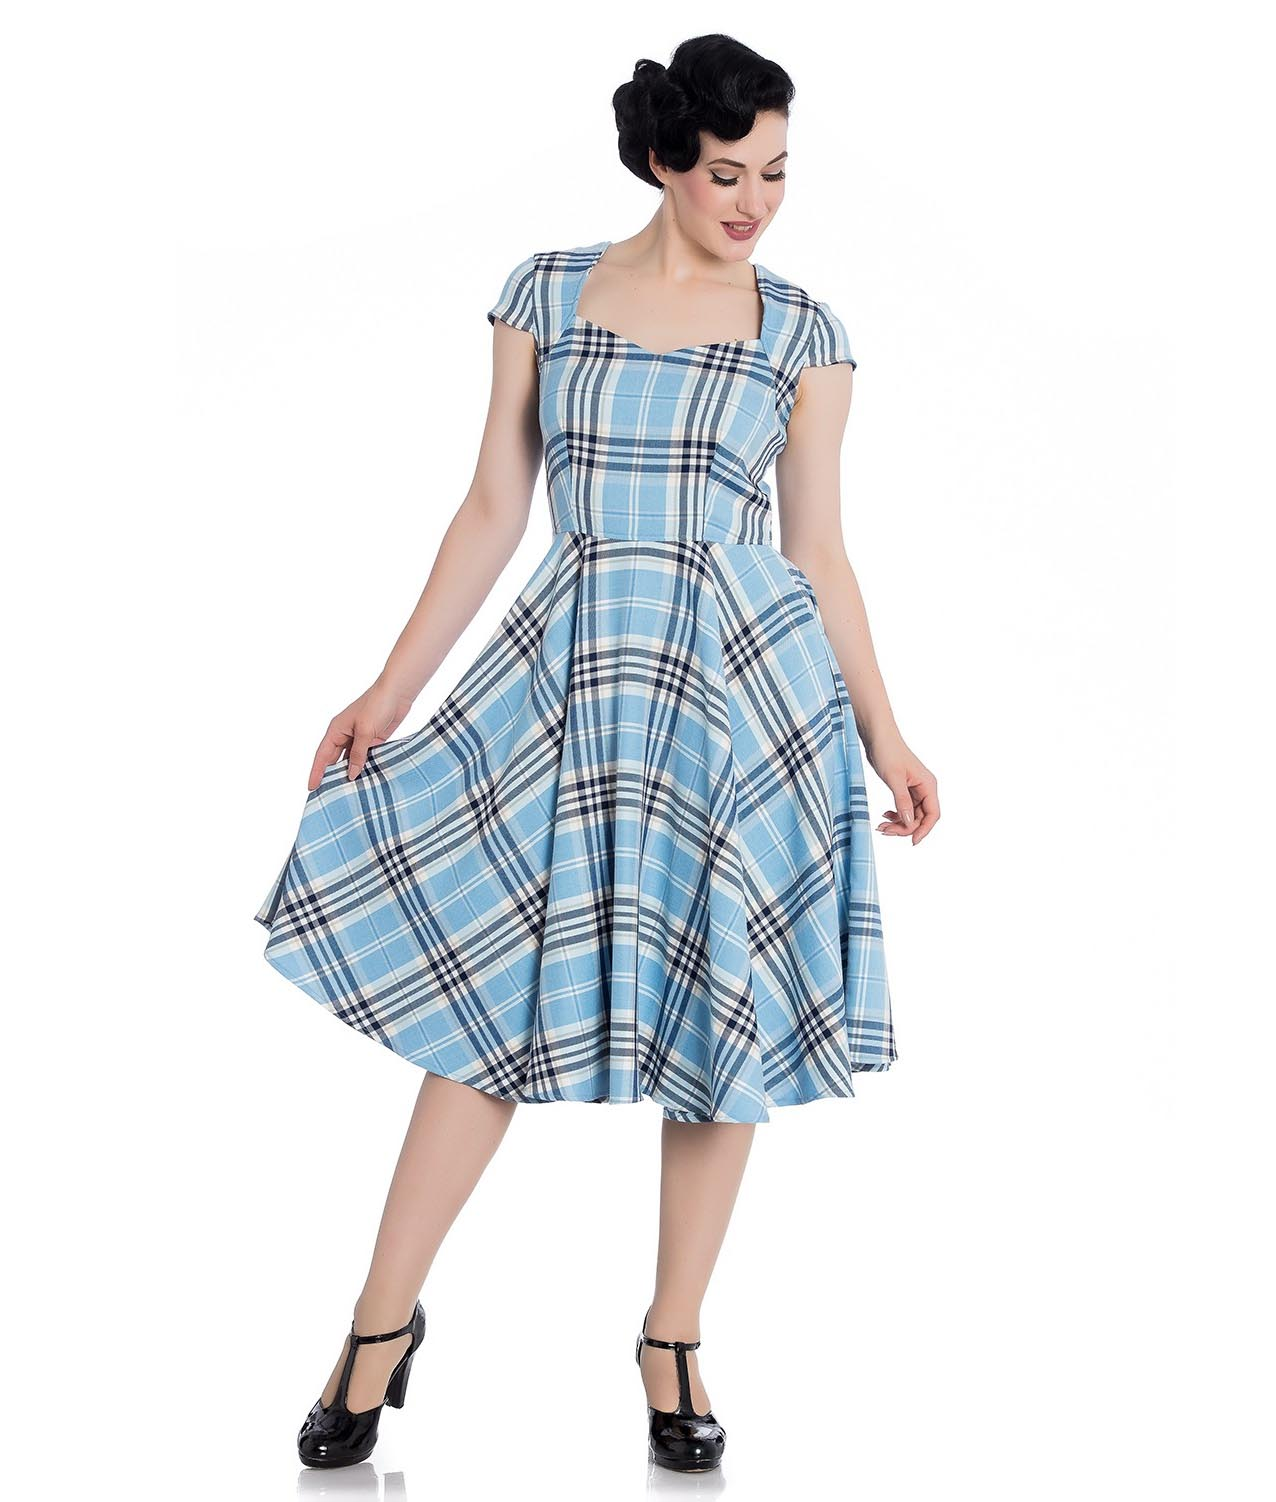 Hell-Bunny-Pinup-50s-Dress-ABERDEEN-Hogmony-Sky-Blue-amp-White-Tartan-All-Sizes thumbnail 7